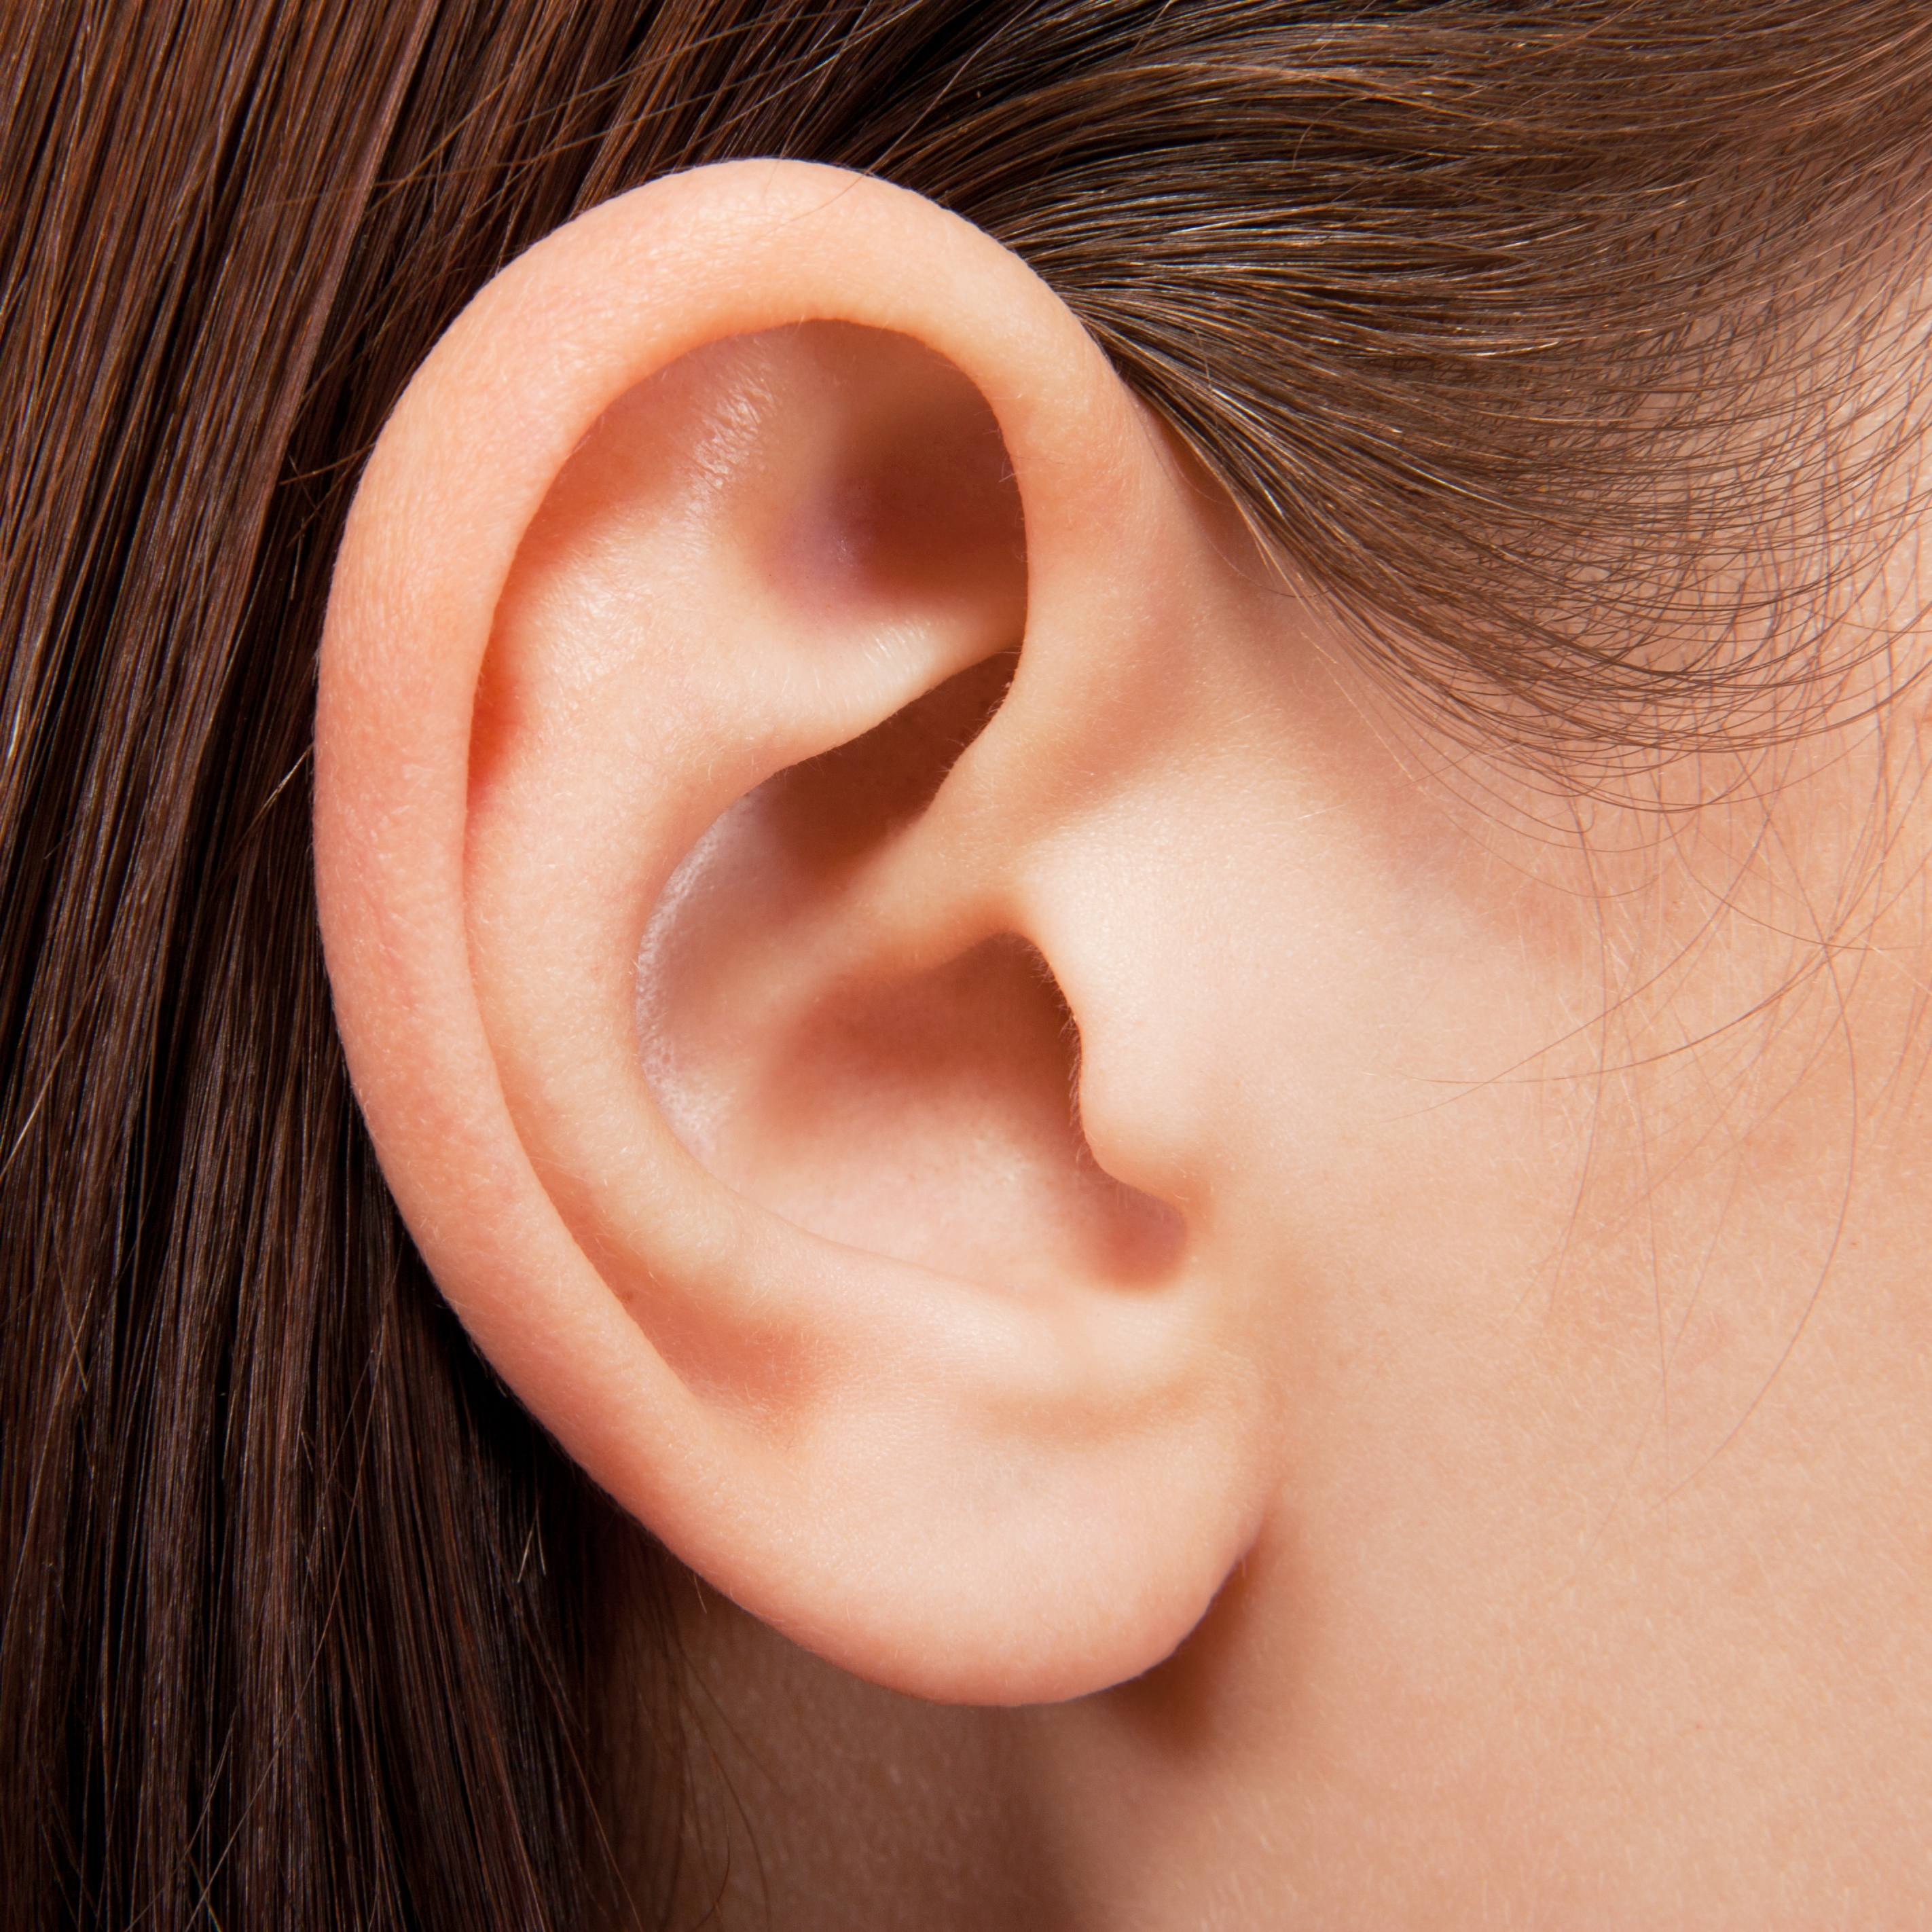 a closeup of a young girl's ear